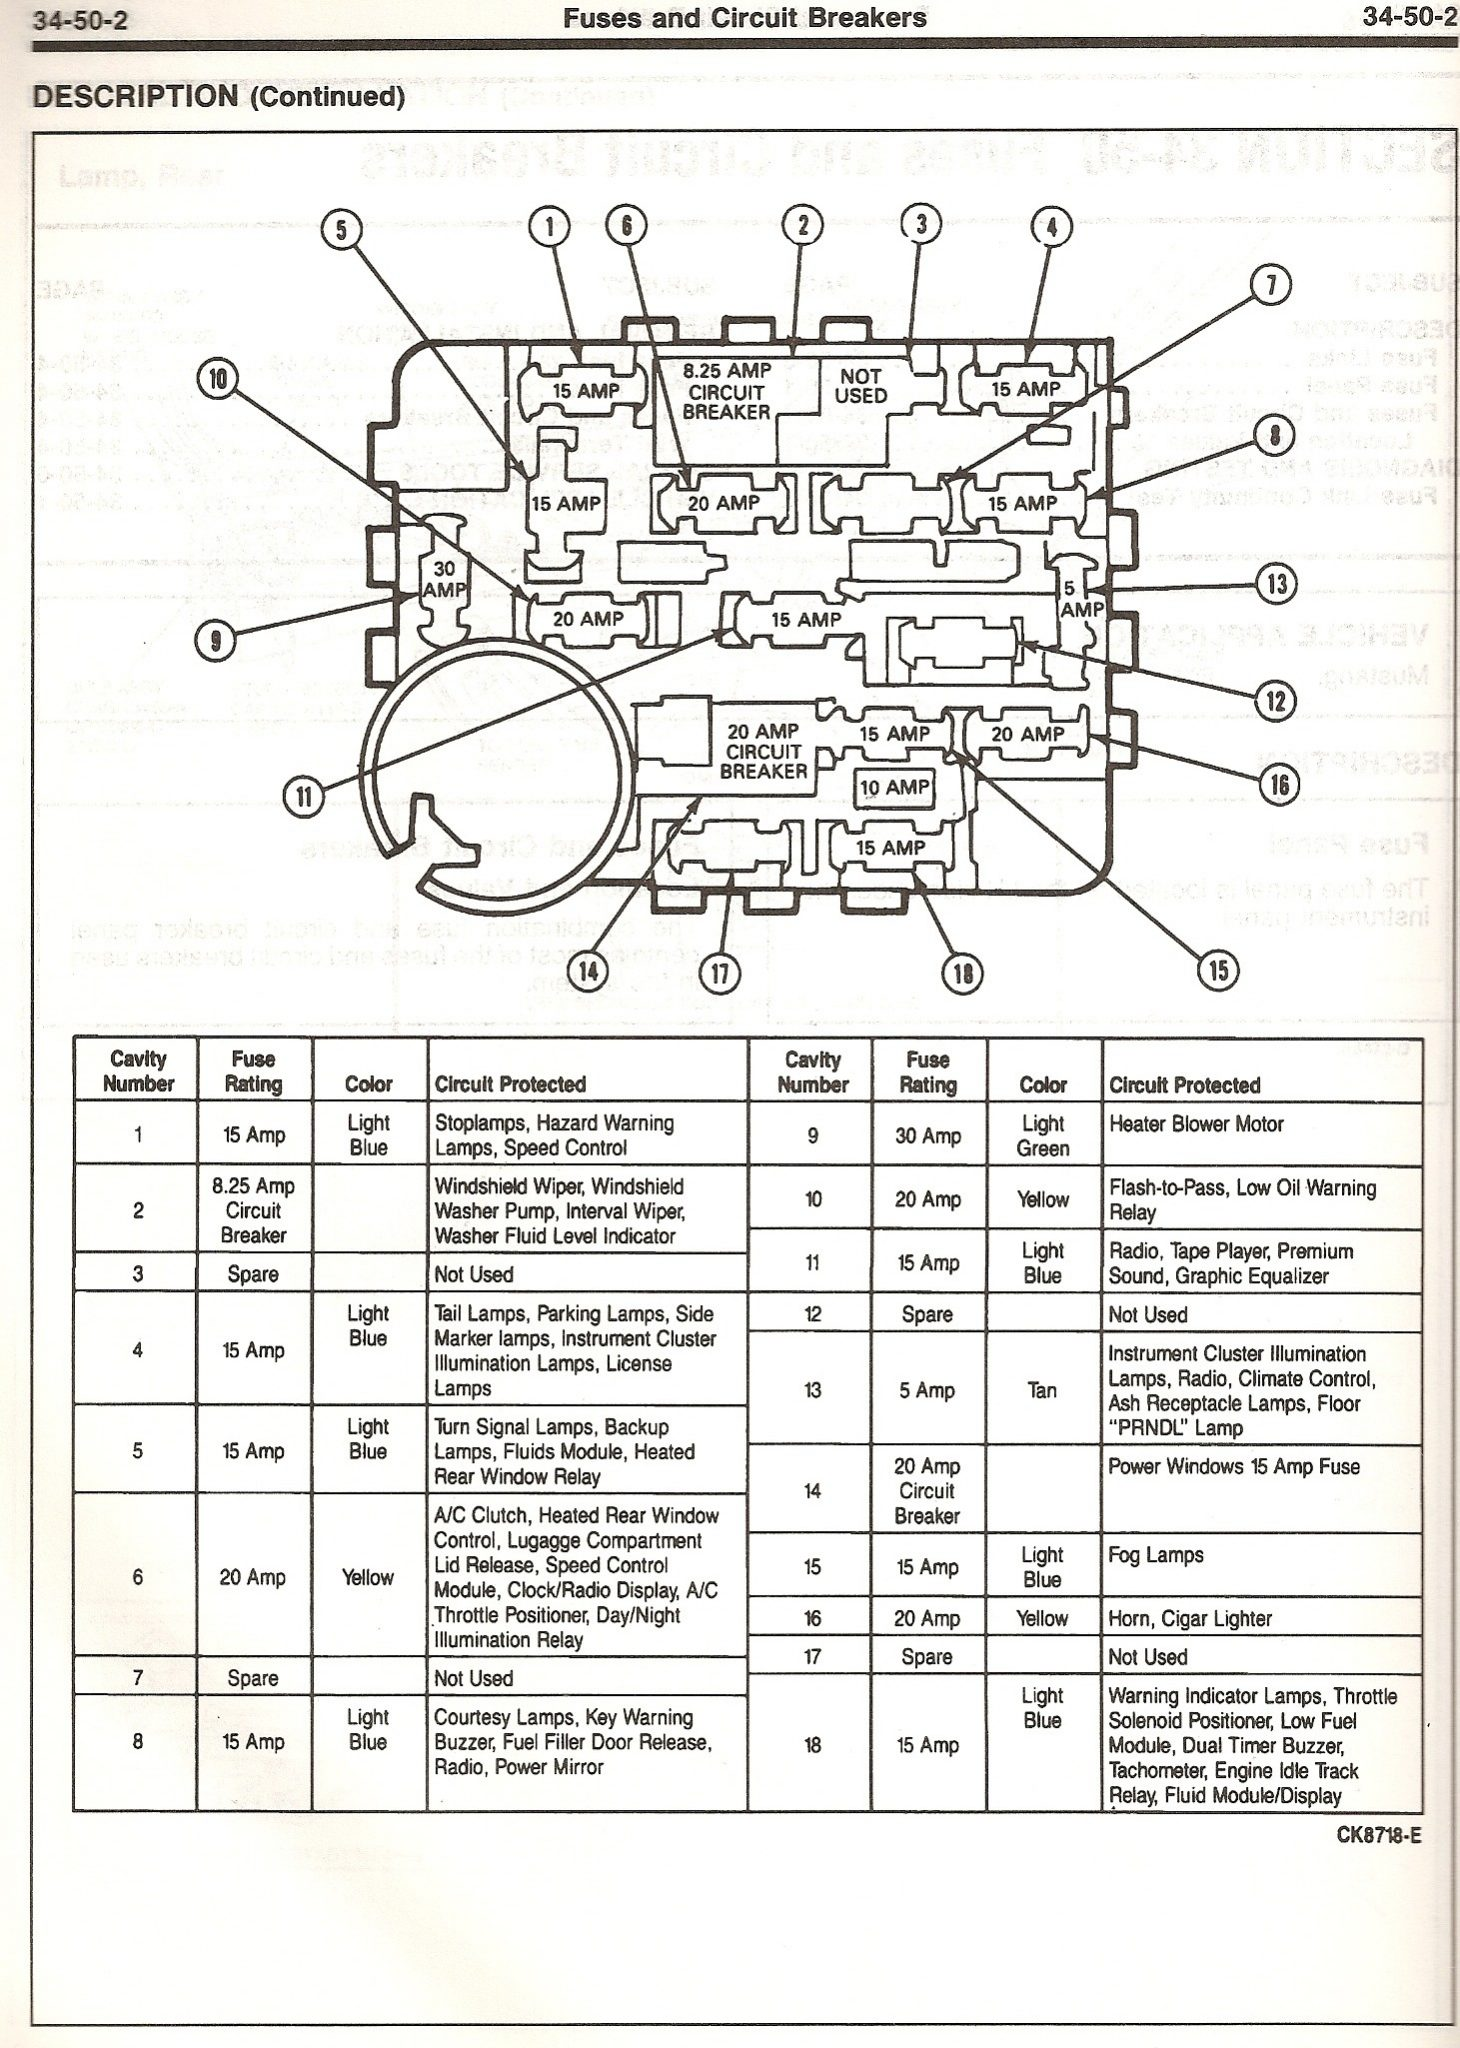 2007 Crown Vic Fuse Box Diagram Wiring Library Ford Fairmont 1990 Electrical Diagrams